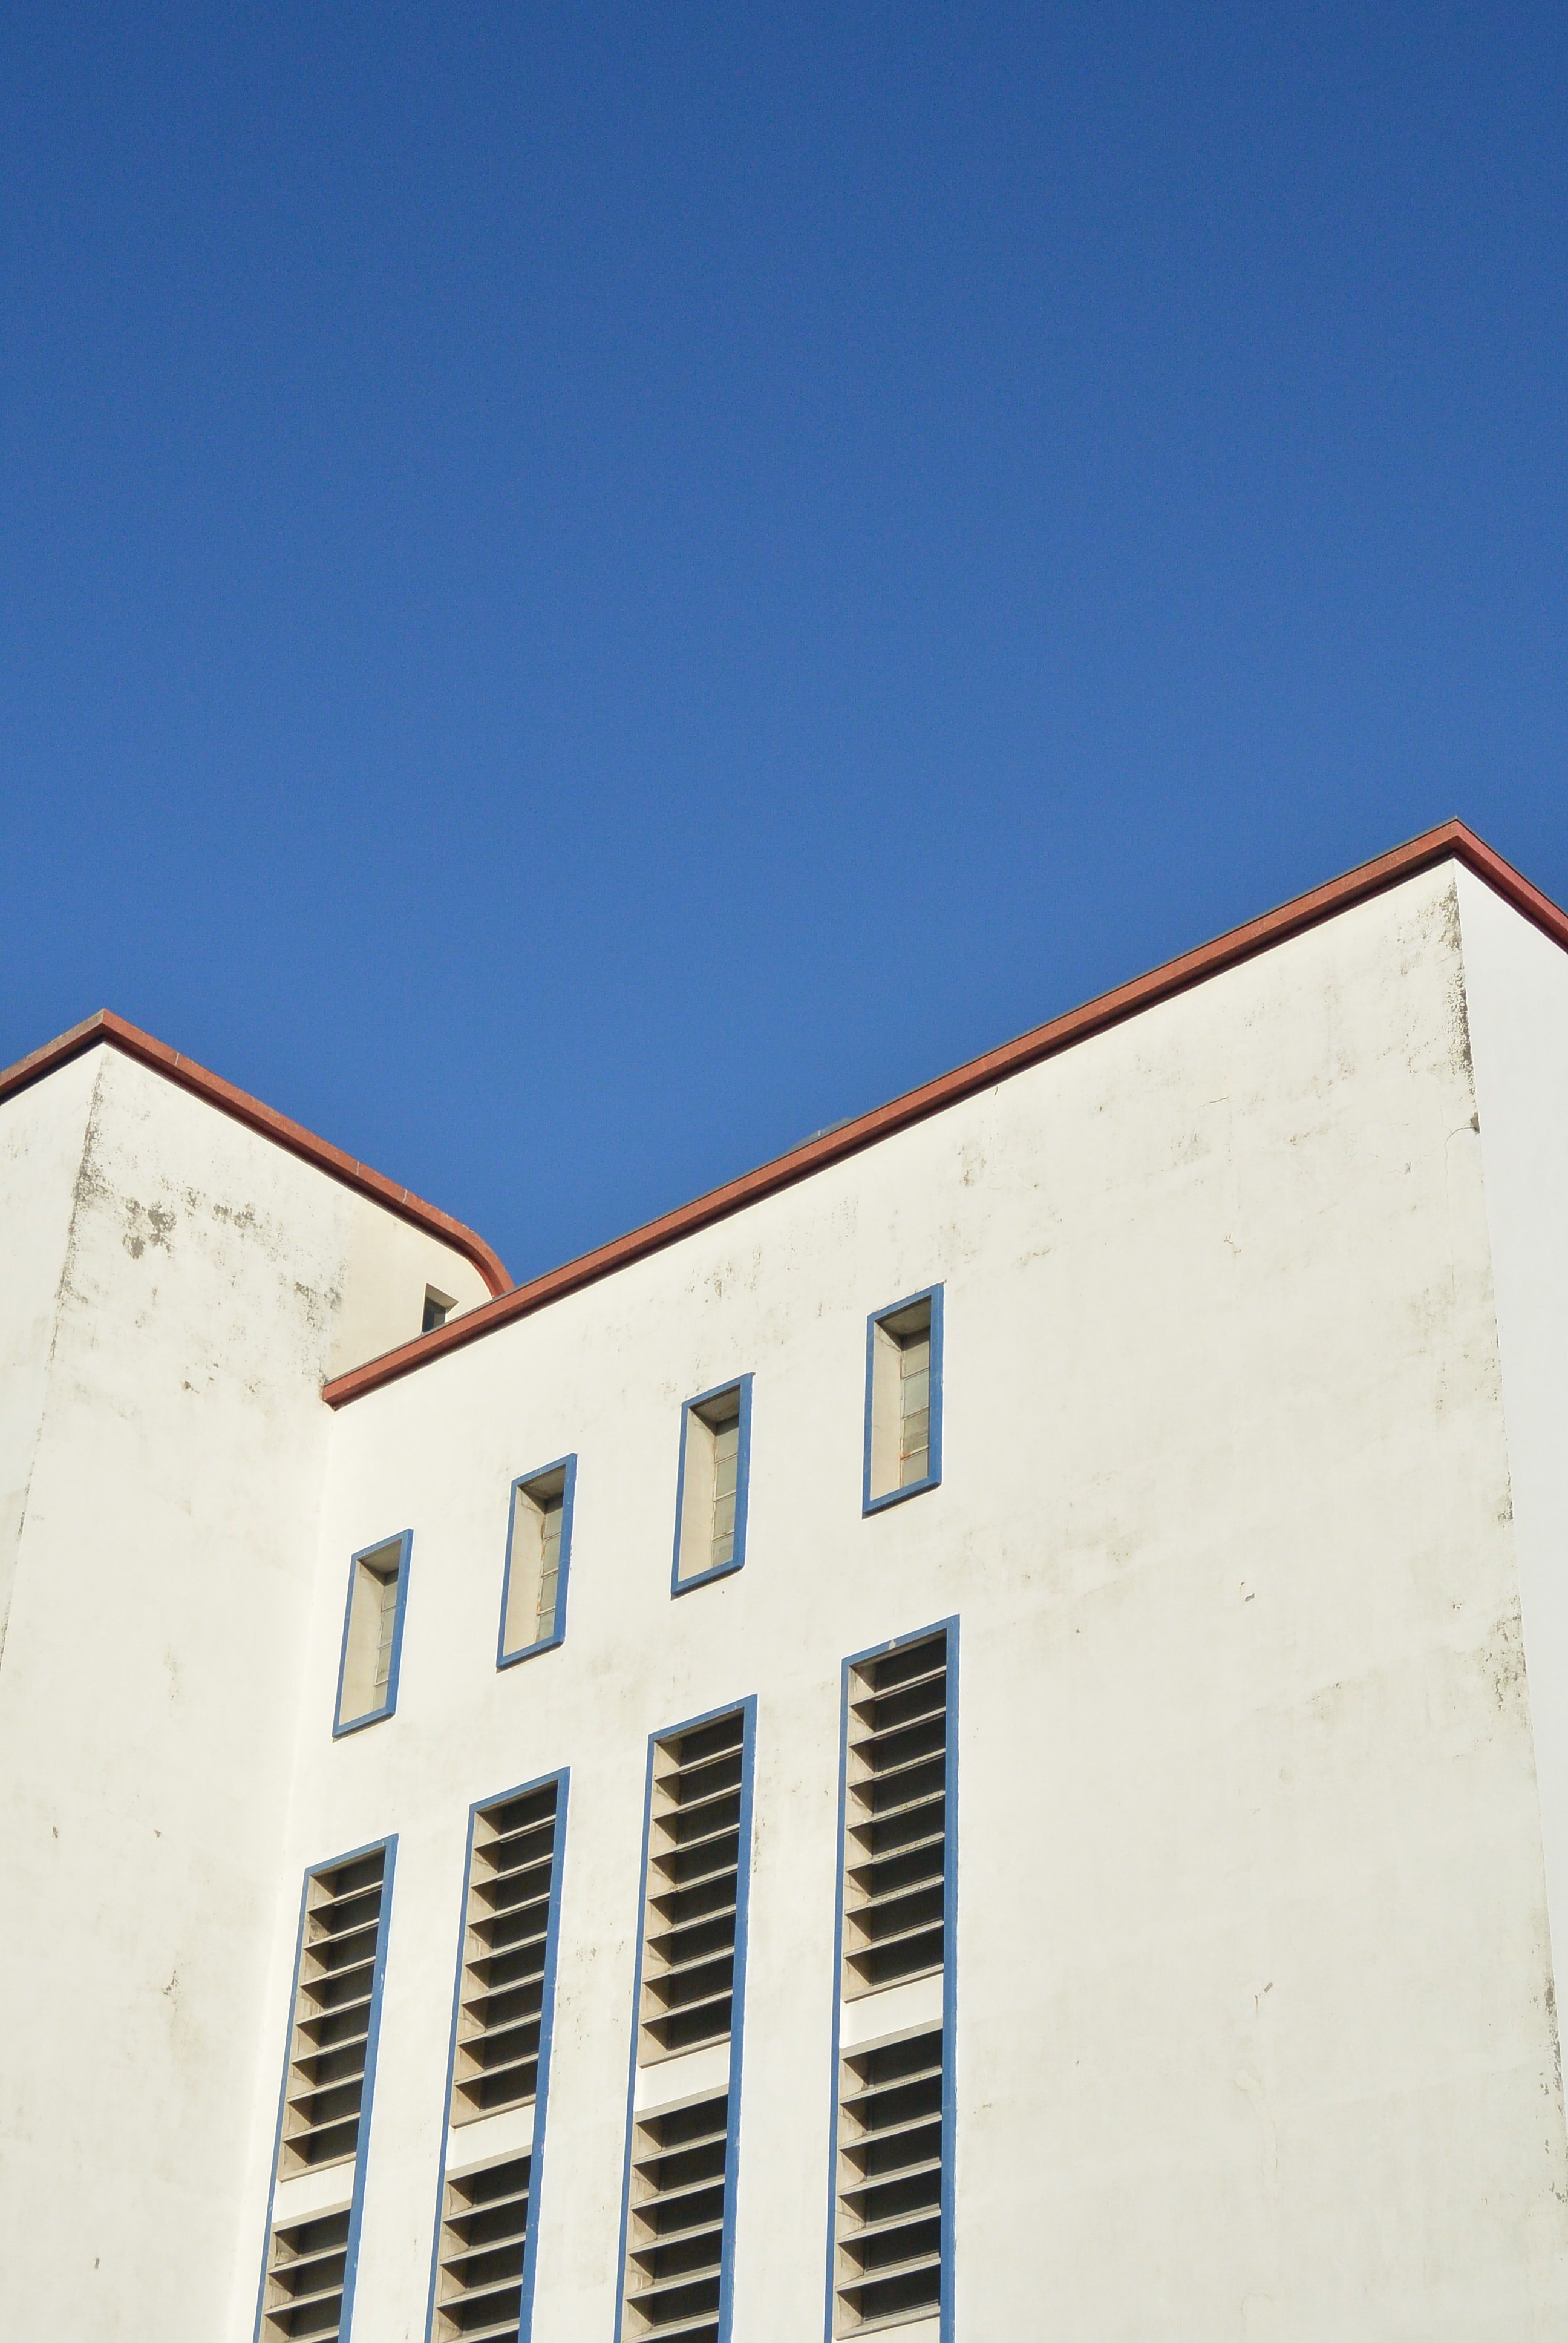 A worn-out white facade in Lisbon under a blue sky